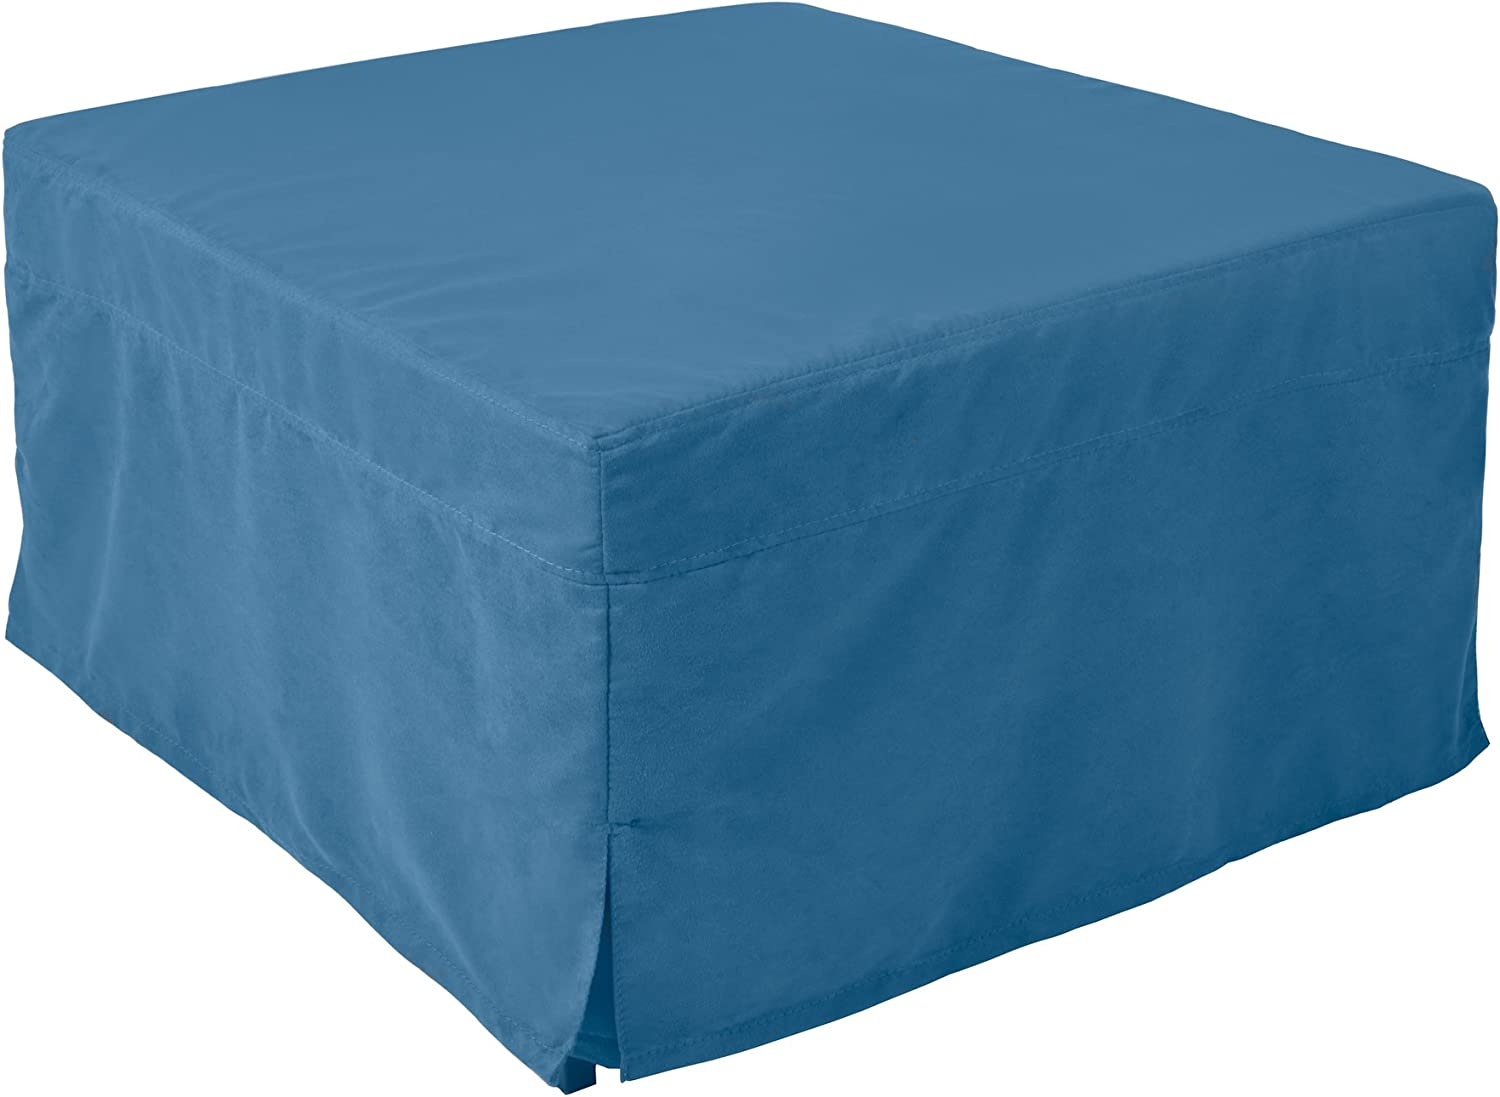 Nova Furniture Group Magical Ottoman Sleeper Fold Out Guest Bed with Microfiber Slipcover, Blue